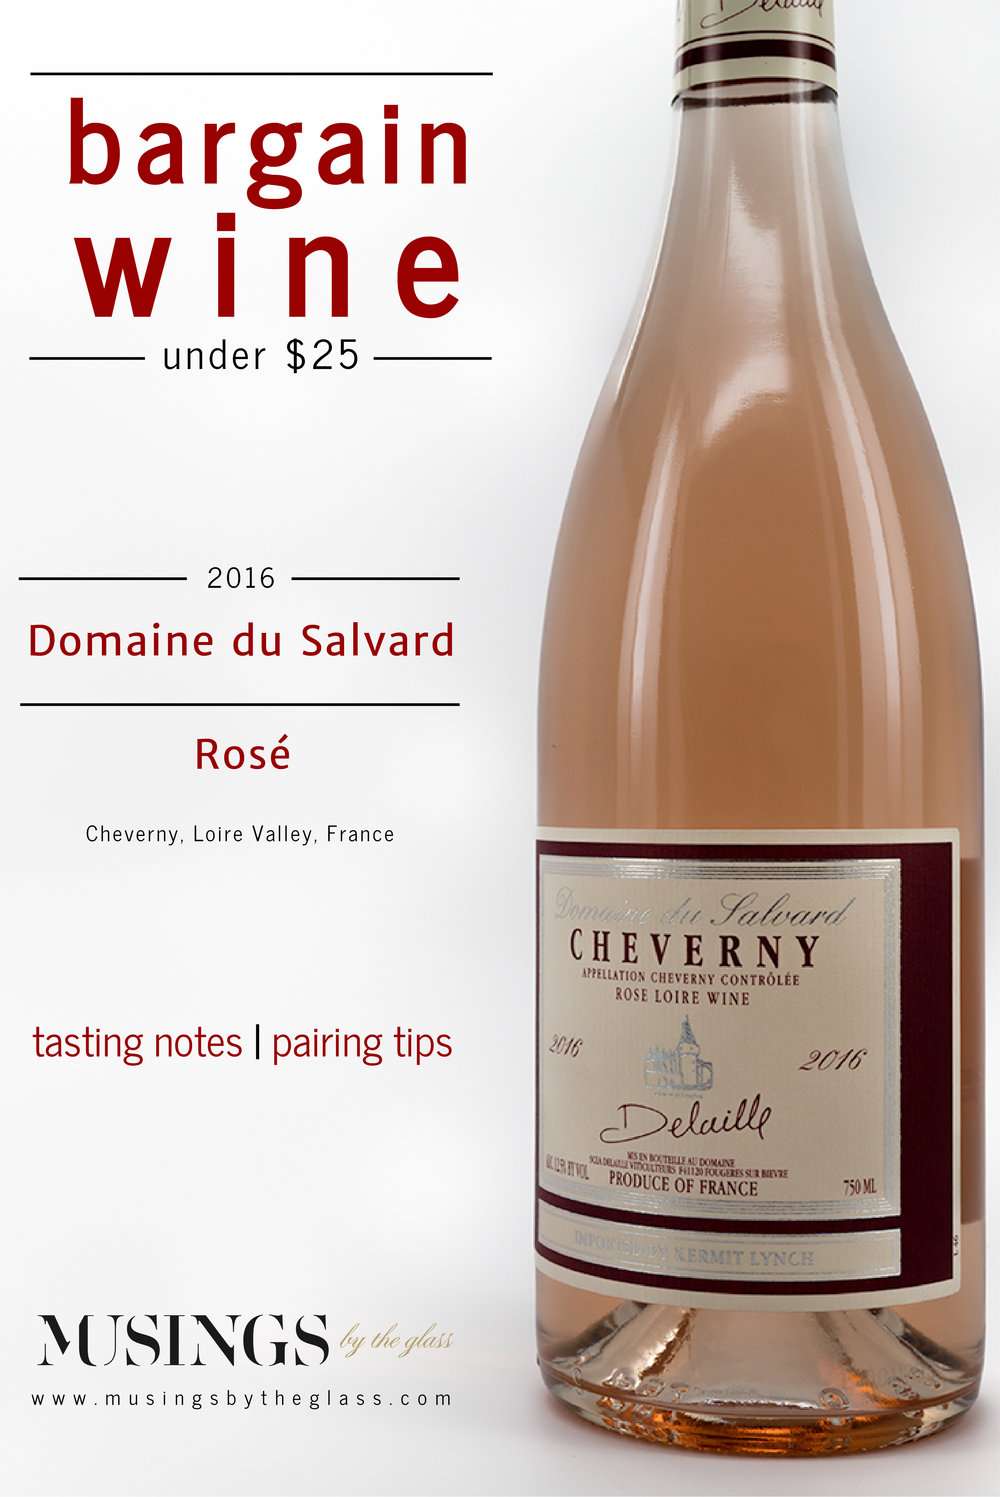 Musings by the Glass - Bargain Wines - Rose from Domaine du Salvard, Cheverny, Loire Valley, France